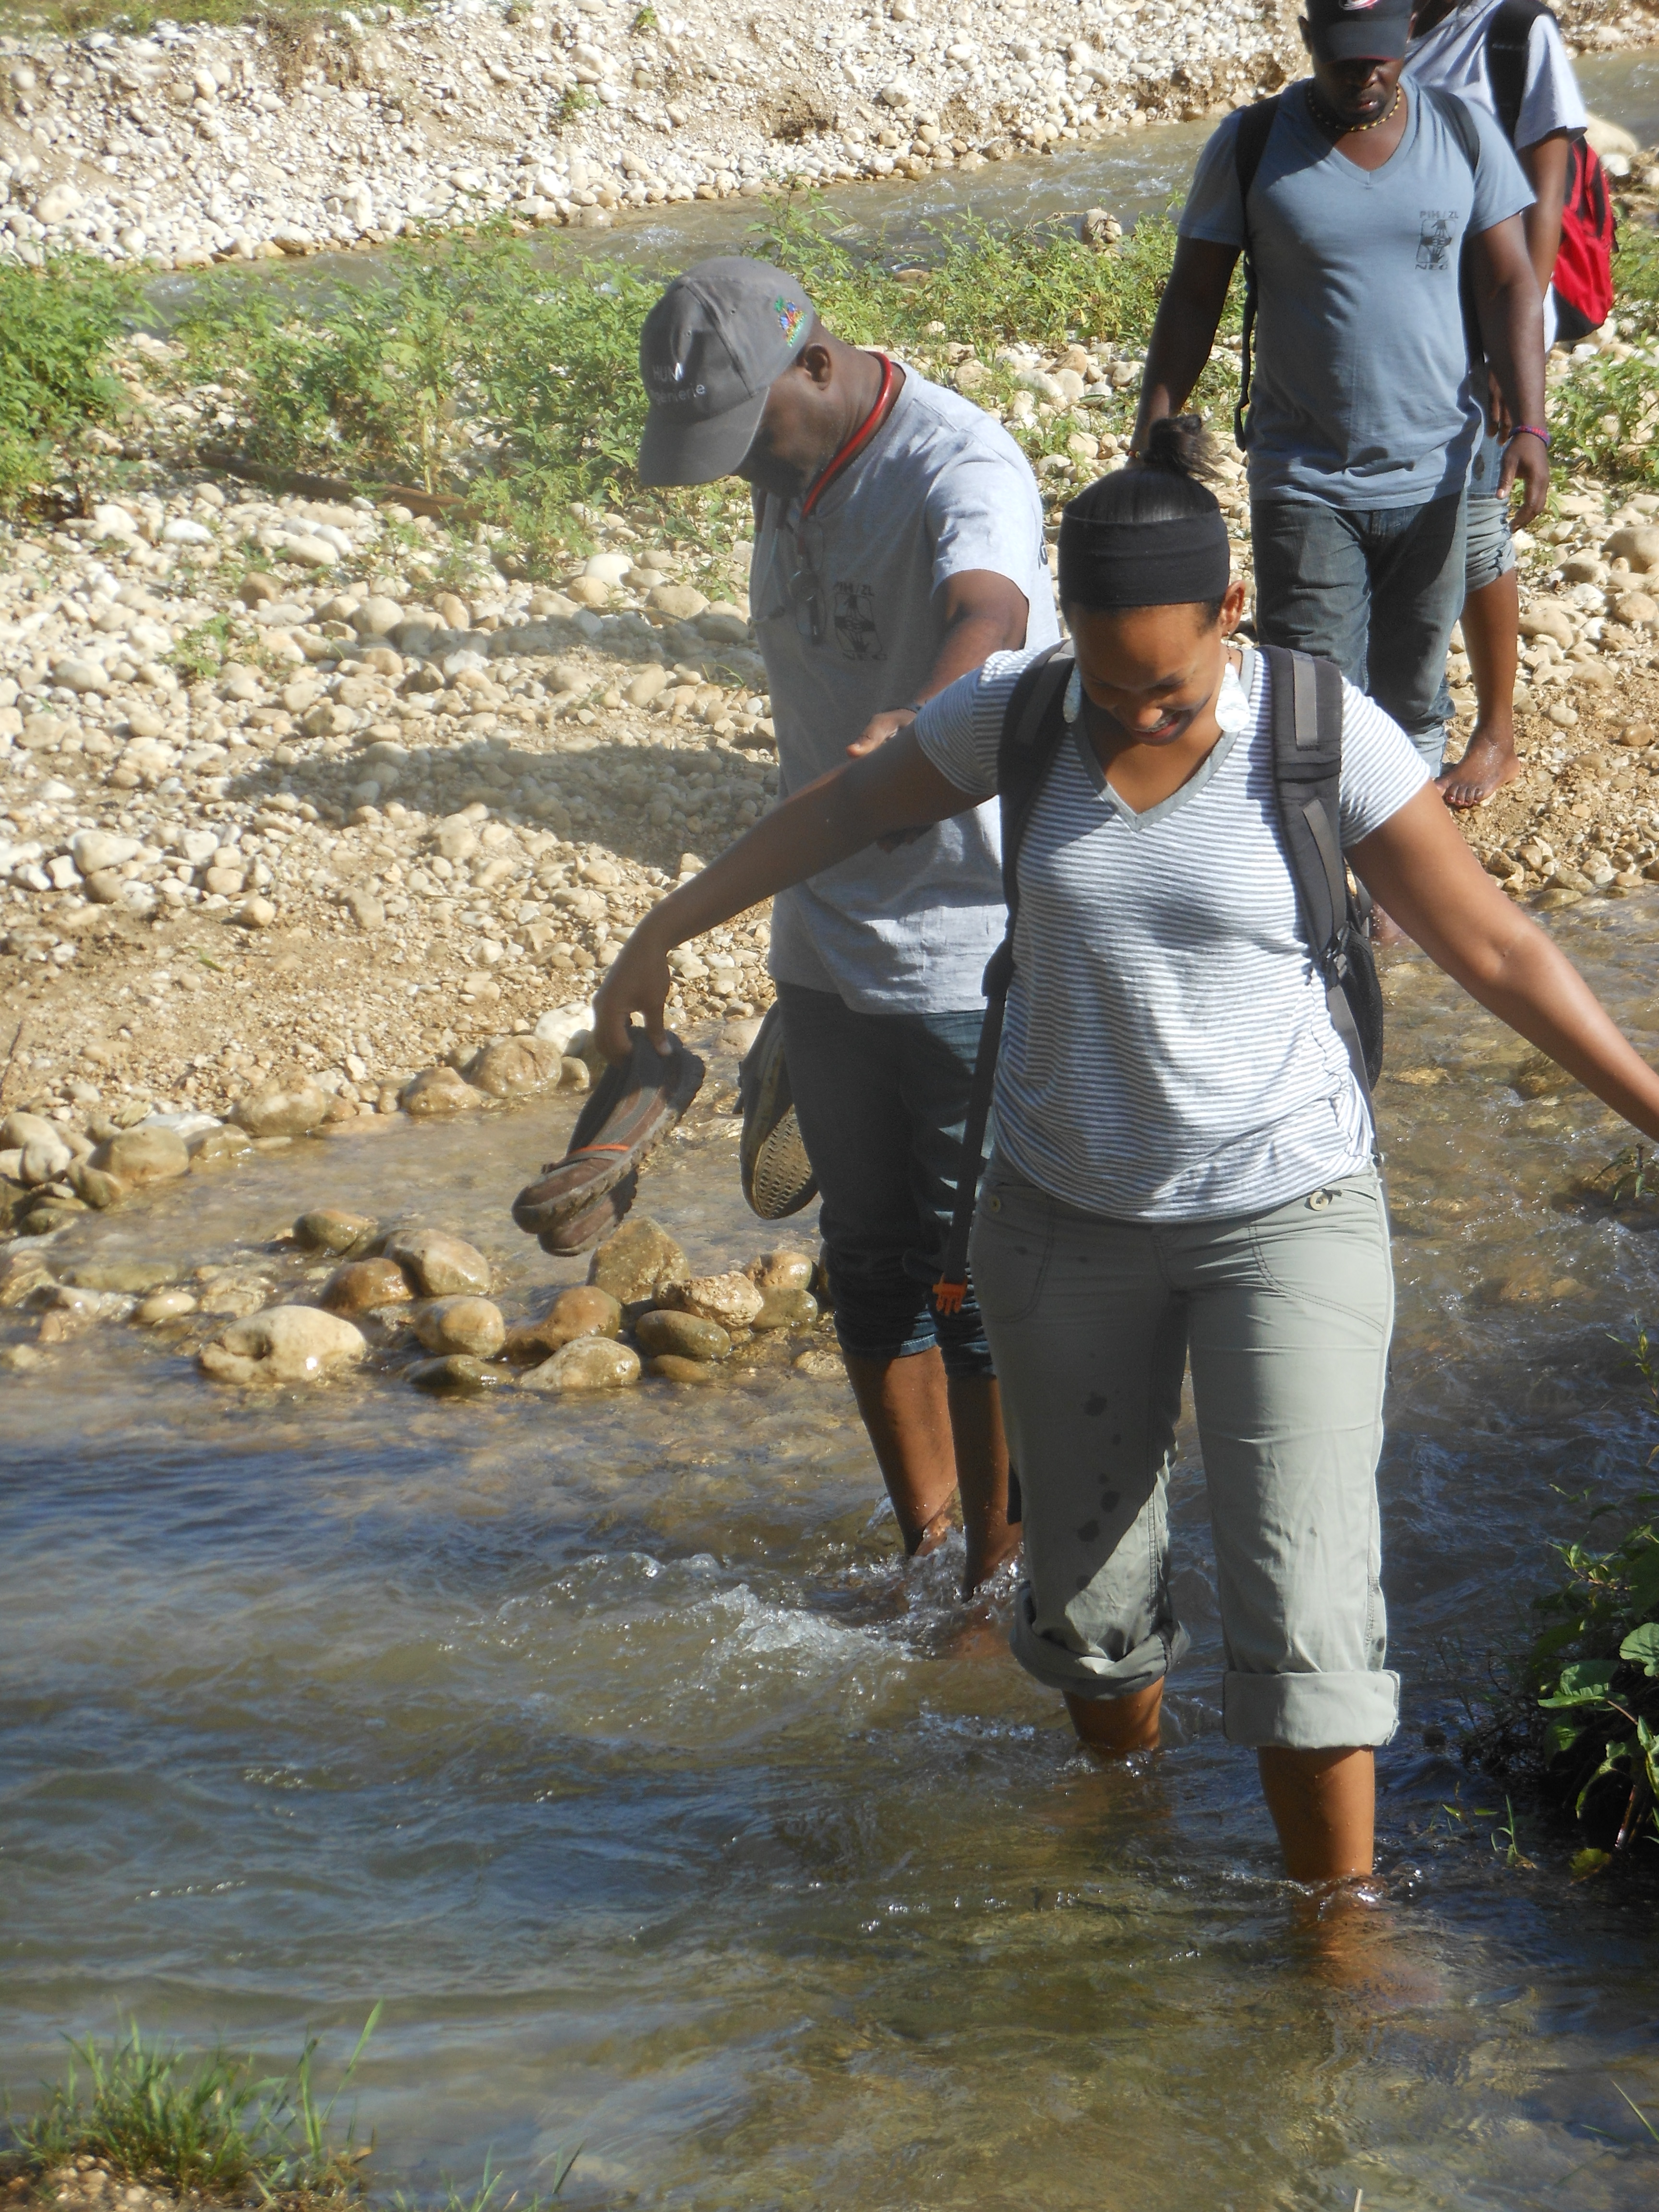 Drs. Michelle Morse and Fernet Leandre leading a medical team through a river on foot to a busy mobile clinic in rural Haiti